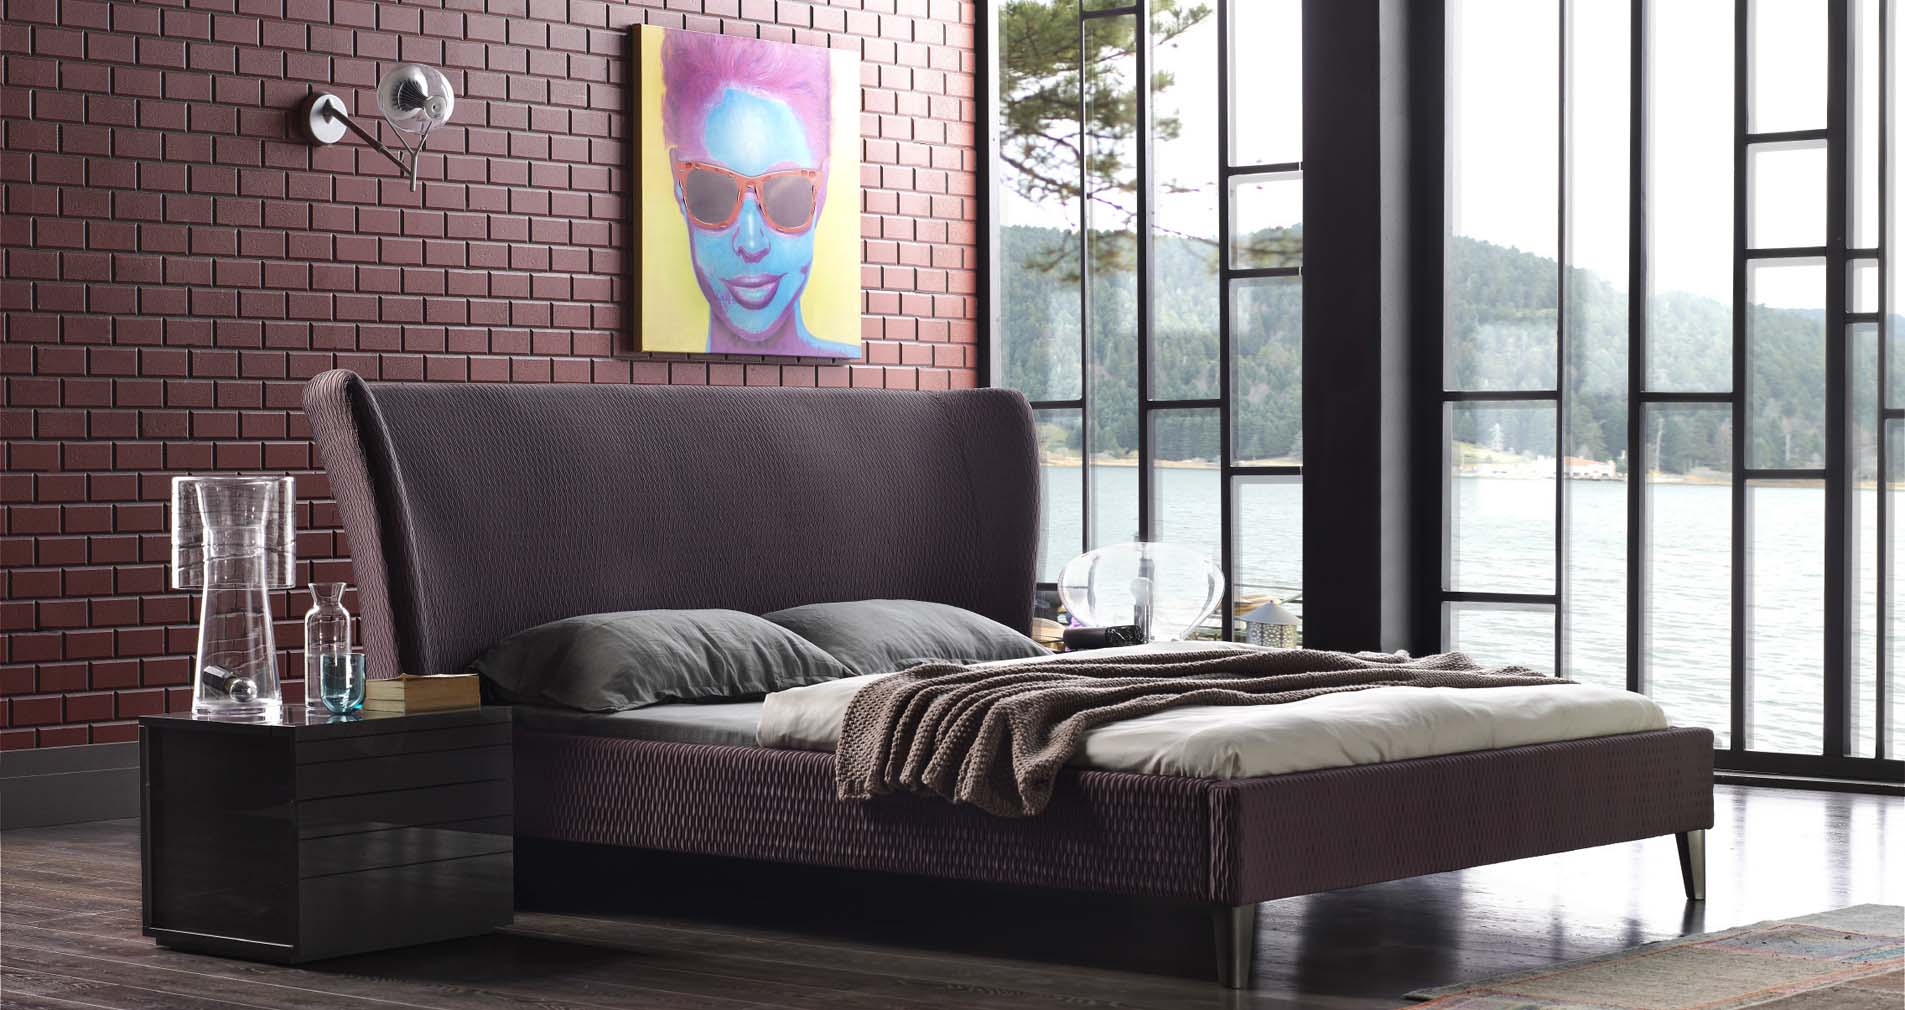 Milano Bedroom Furniture Moon Headboard Radiator Cover And Wall Panel